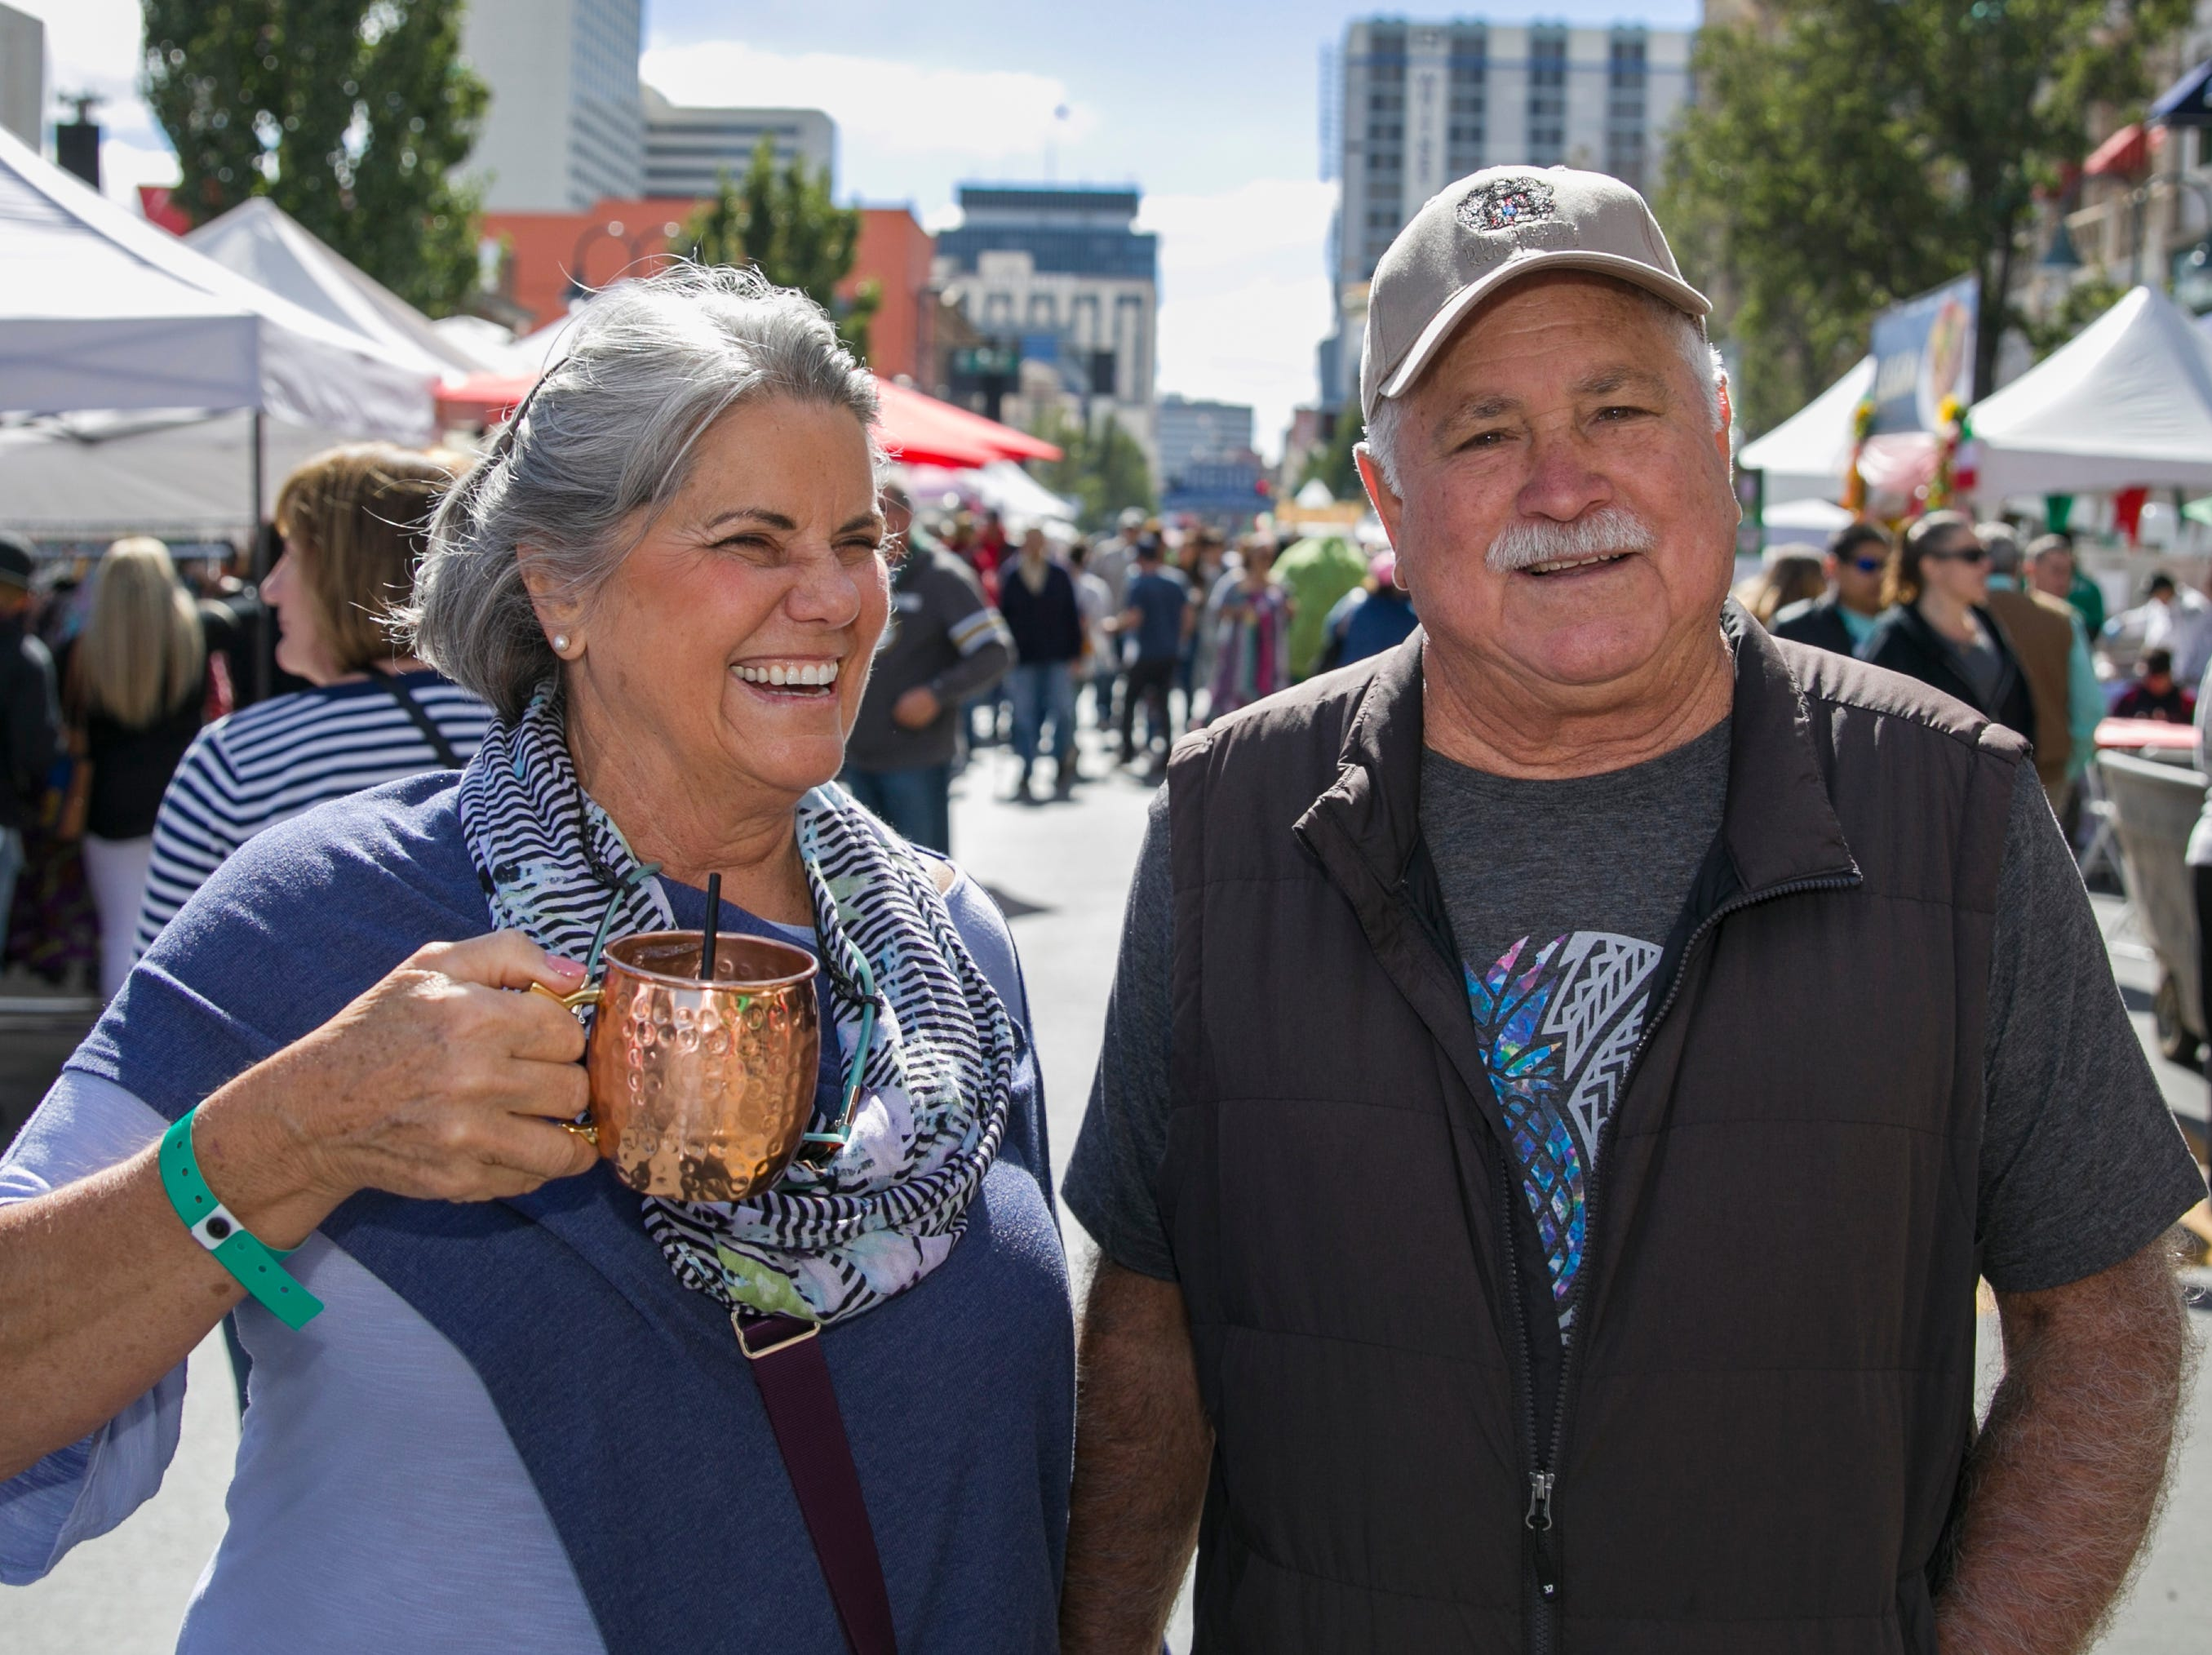 Tina and Casey during the Italian Festival held in downtown Reno outside of the Eldorado Hotel and Casino on Sunday afternoon, October 7, 2018.